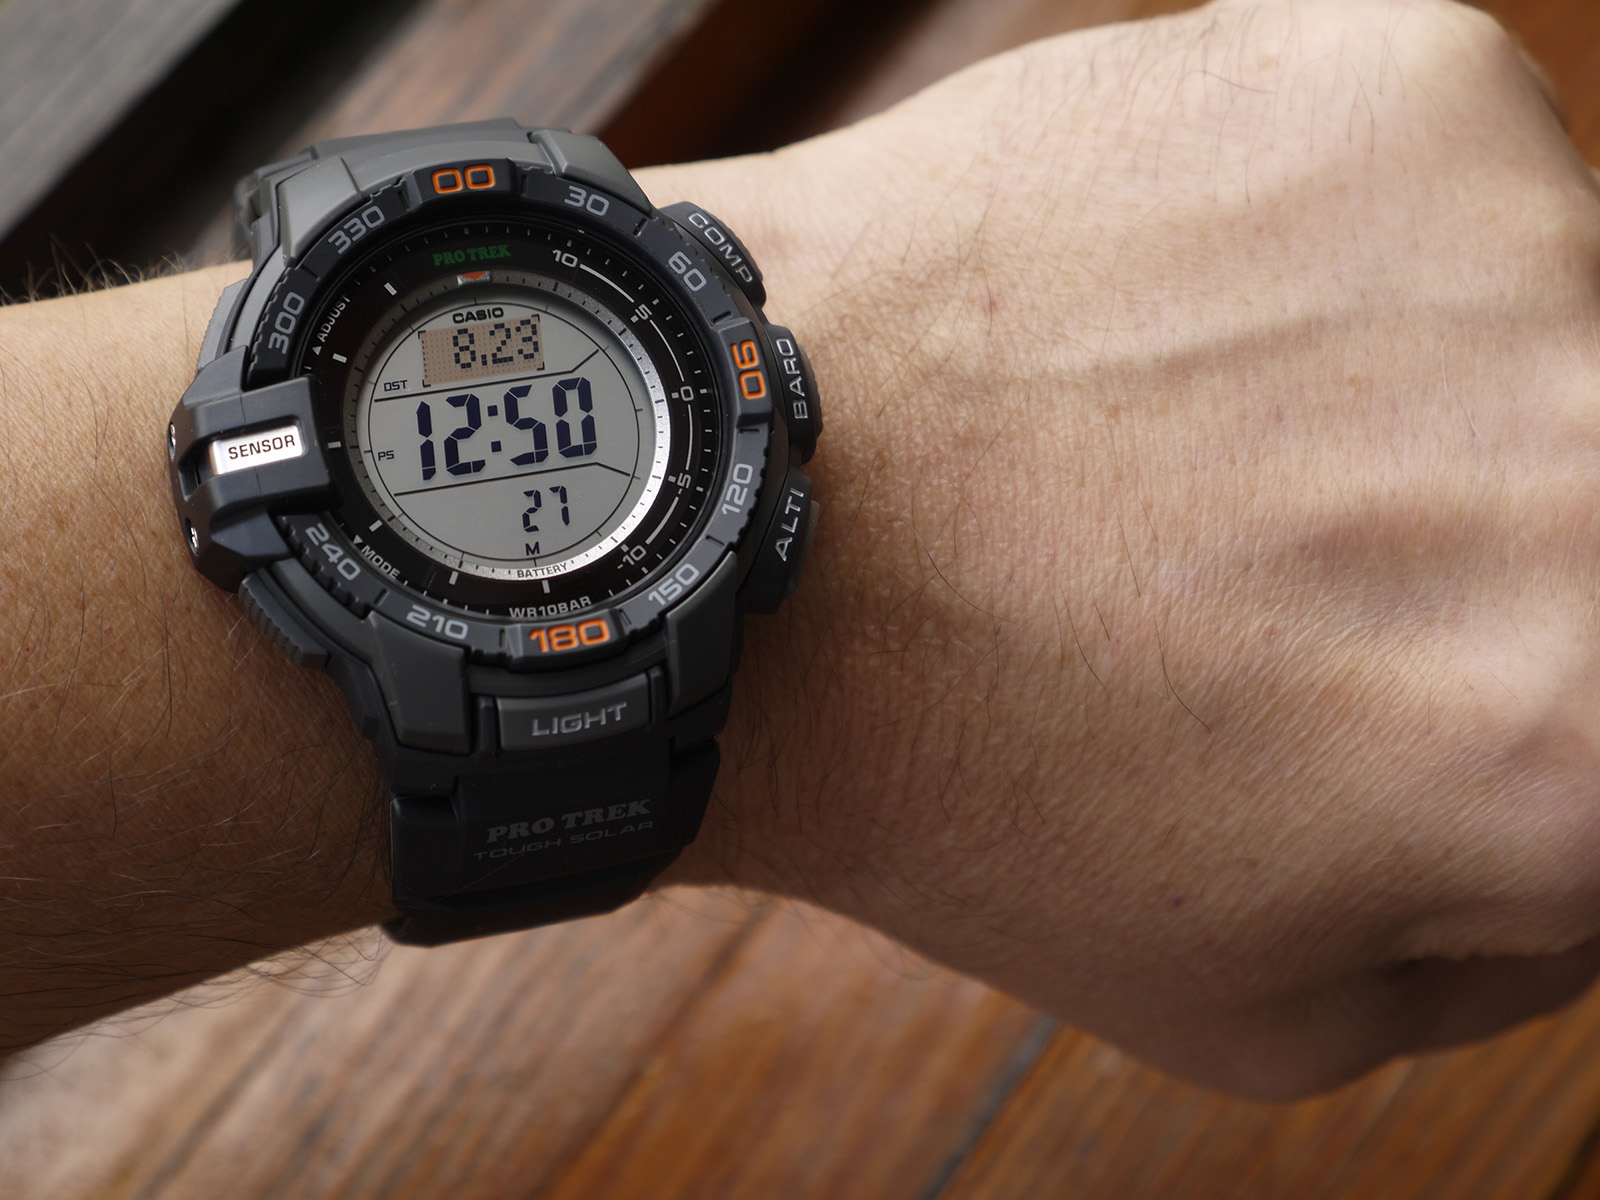 Analog Watch Casio Protrek Prg-270-1 Watch ⋆ High Quality Watch Gallery